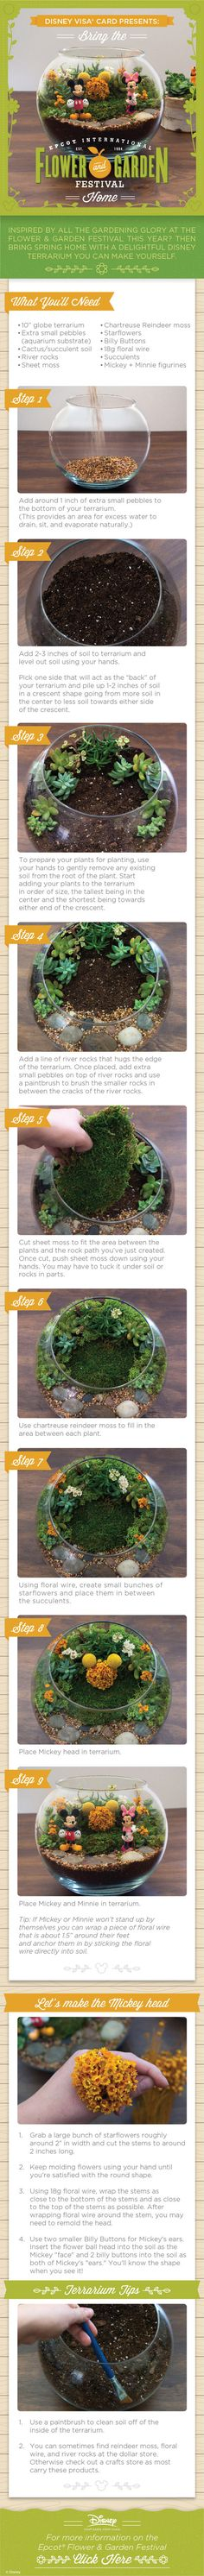 Flower Power! Check out this DIY Disney themed terrarium, inspired by the Epcot® Flower & Garden Festival. Then get creative and make your own featuring your favorite Disney Characters. Experiment with different flowers and colors…let your imagination bloom!